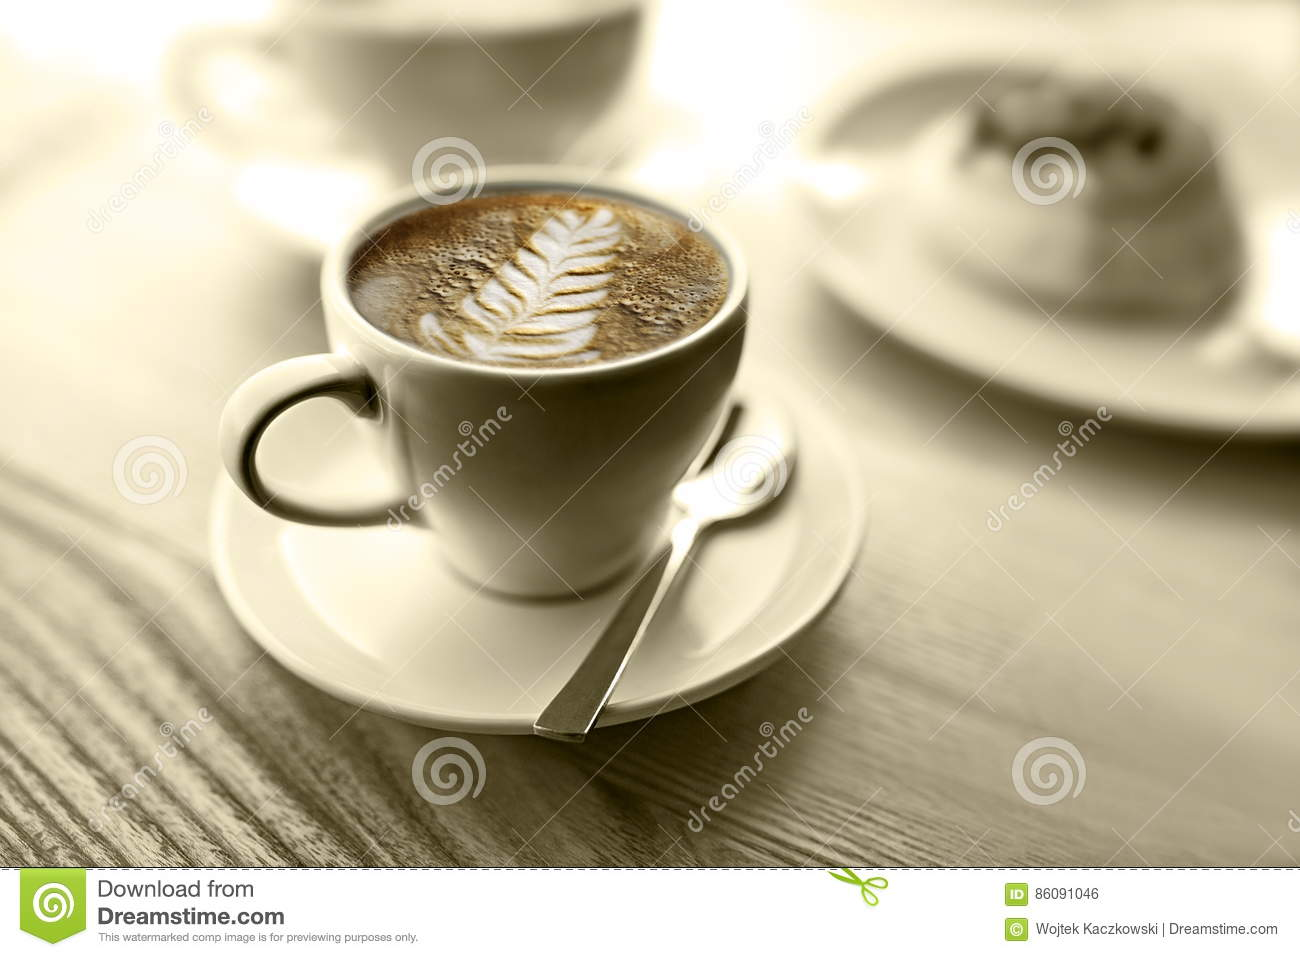 Take Break Coffeebreak : I feel like coffee let`s take a coffee break stock photo image